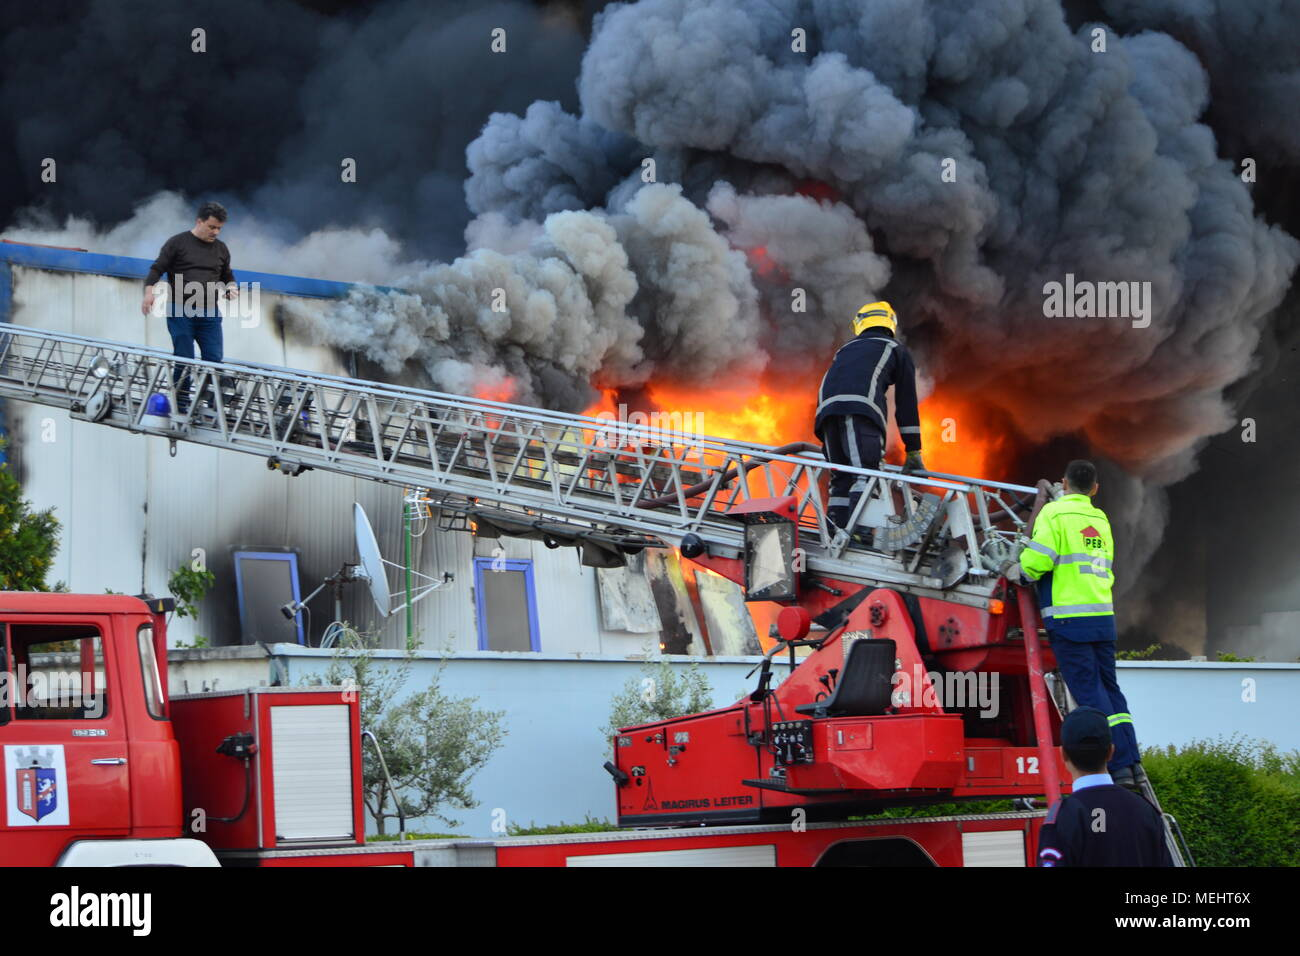 Kashar, Tirana-Albania, 22 April 2018. Huge fire burns completely a recycling company  in Kashar,  10 fire-units already on the scene struggling to extinguish the flames. NO injures or fatalities are reported Credit: Antonio Cakshiri/Alamy Live News - Stock Image